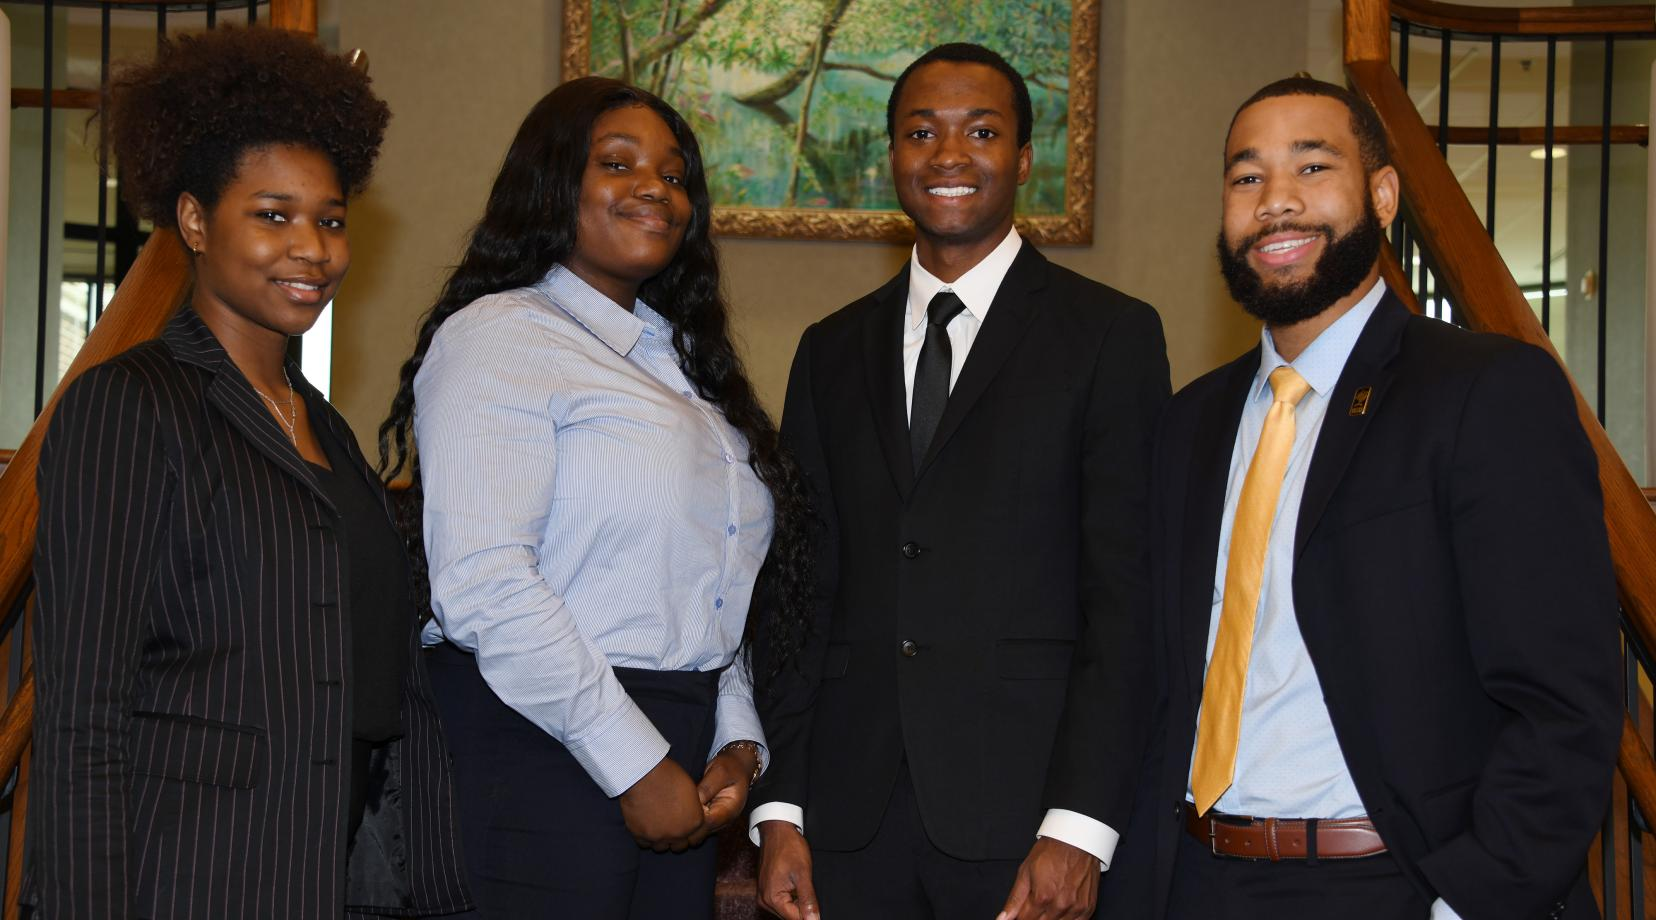 <p>The College of Business team of (l-r) Yazmin Harris, Faith Olasupo, Job Albarr and Corban Weatherspoon took second place in the HP Omen Business Case Competition</p>